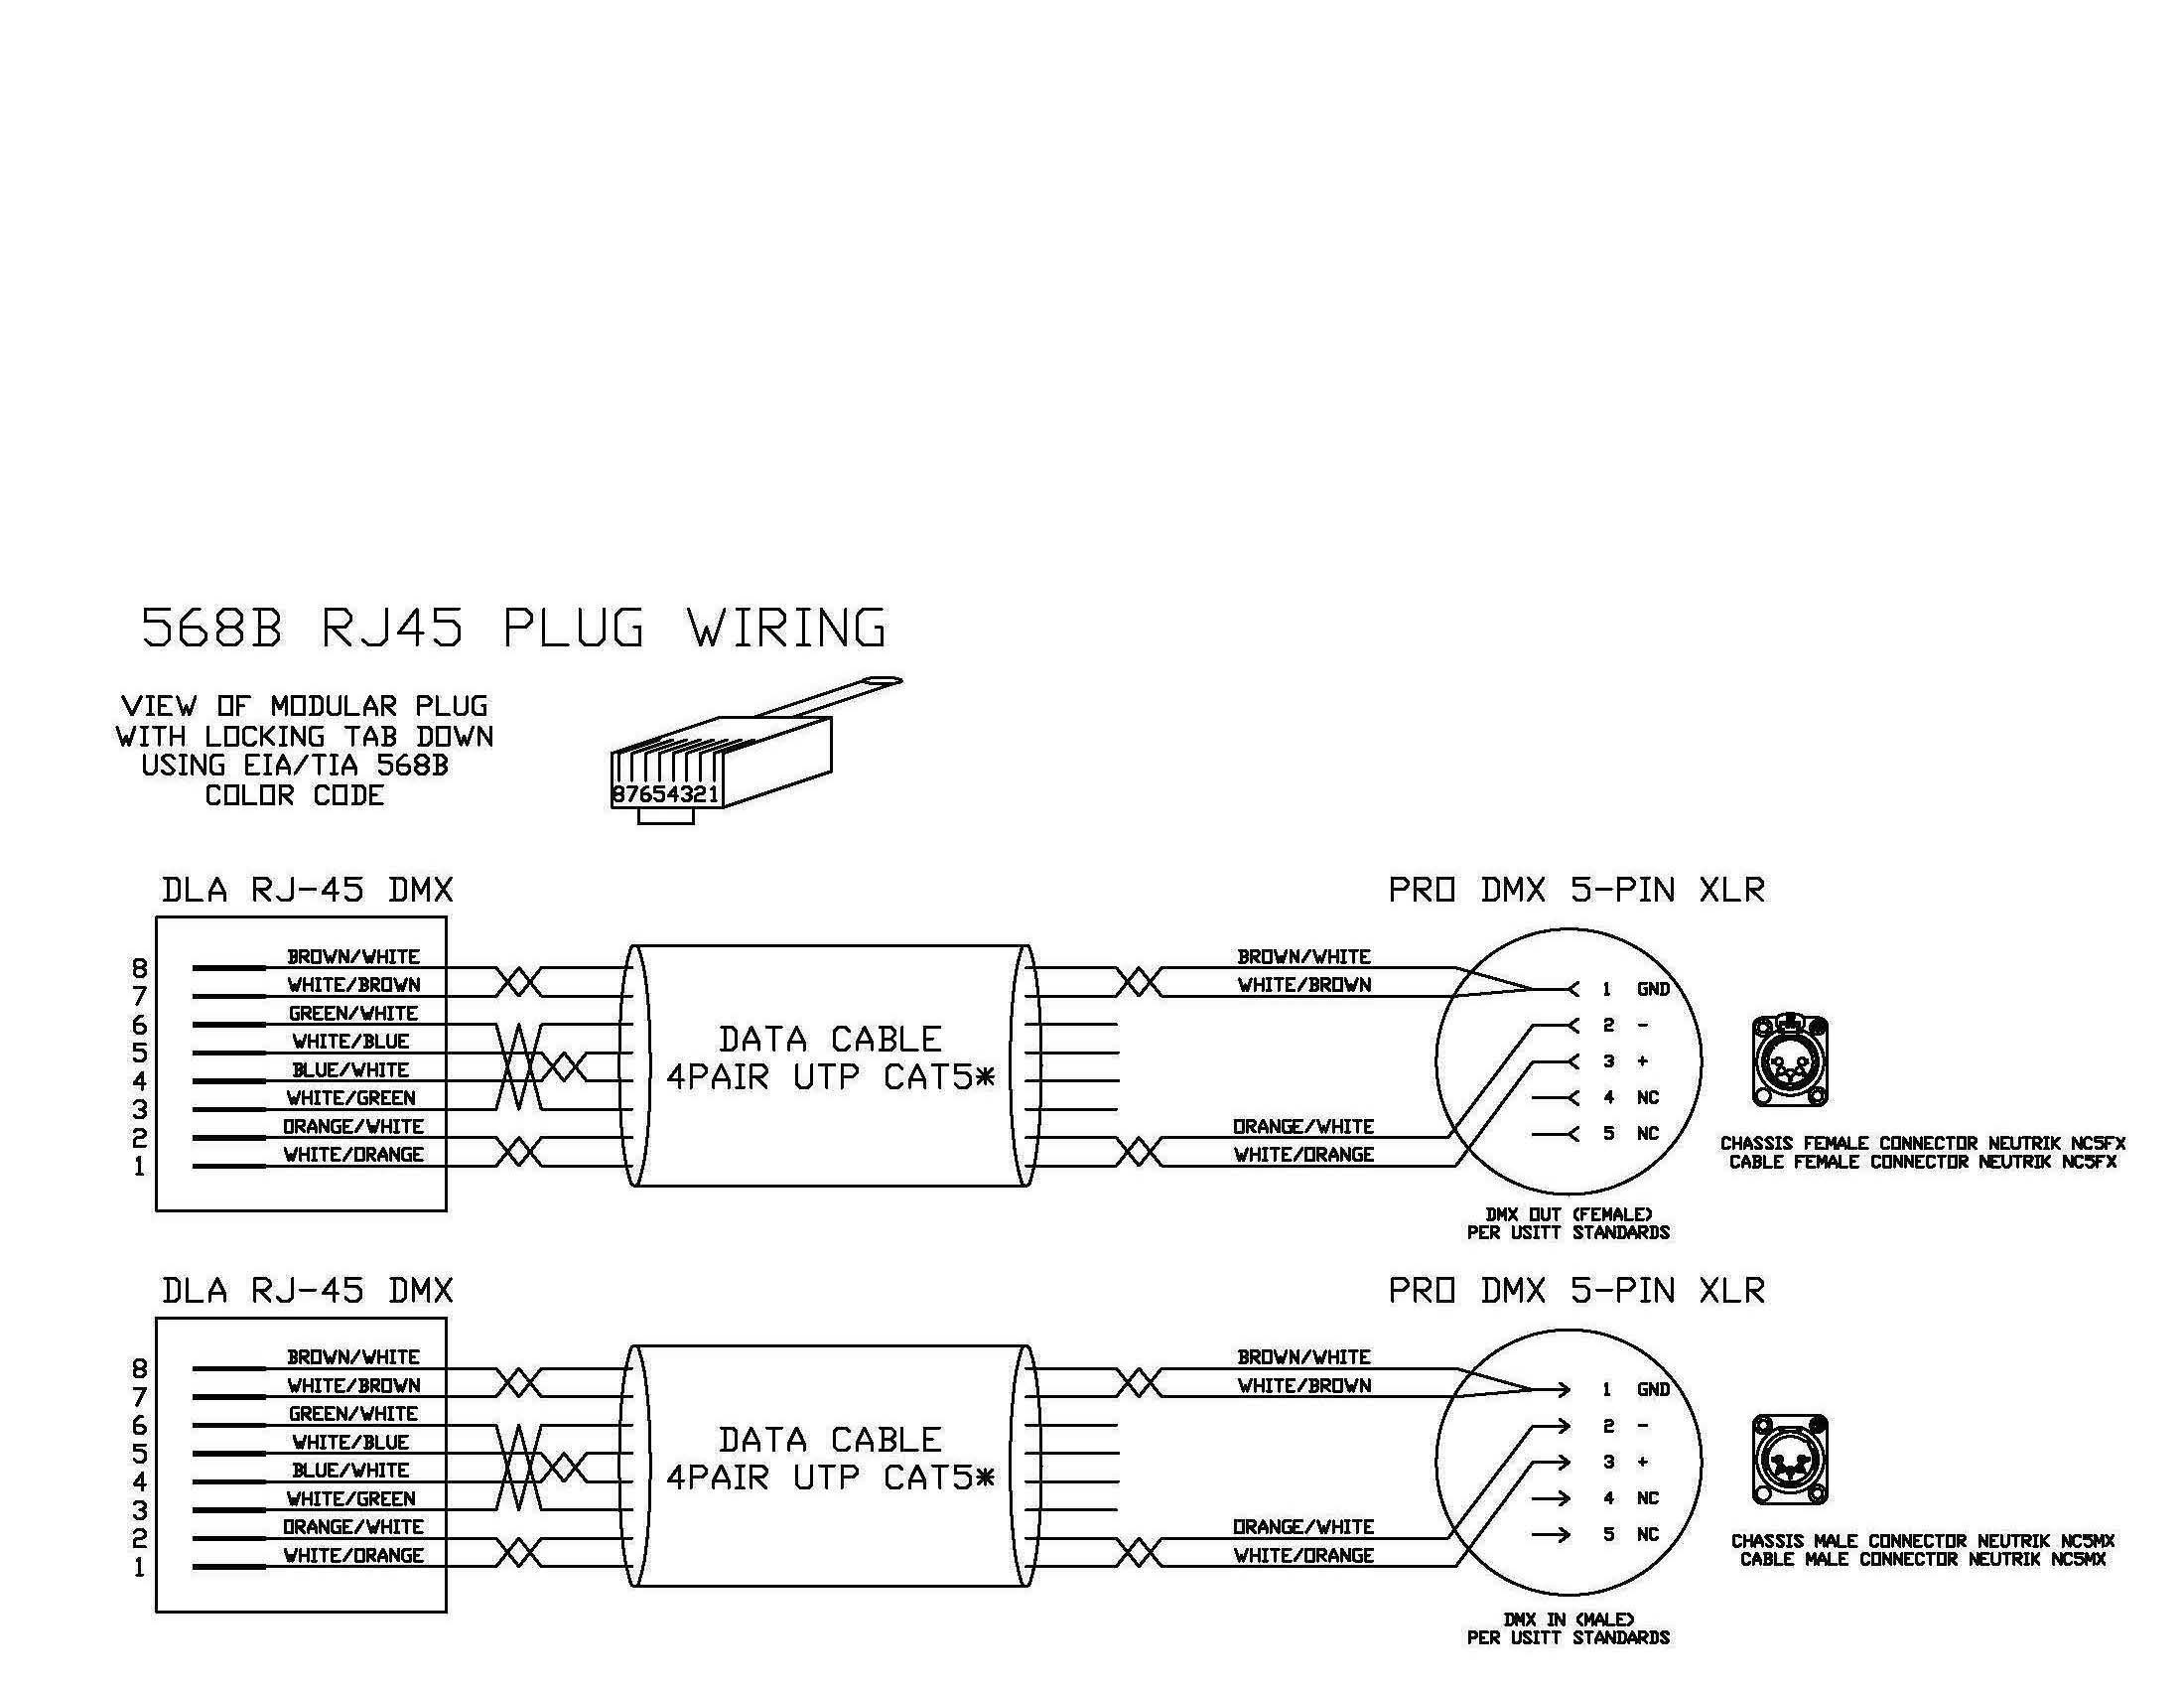 hight resolution of 4 pin cb mic wiring galaxy wiring diagrampin cb microphone wiring codes as well as galaxy